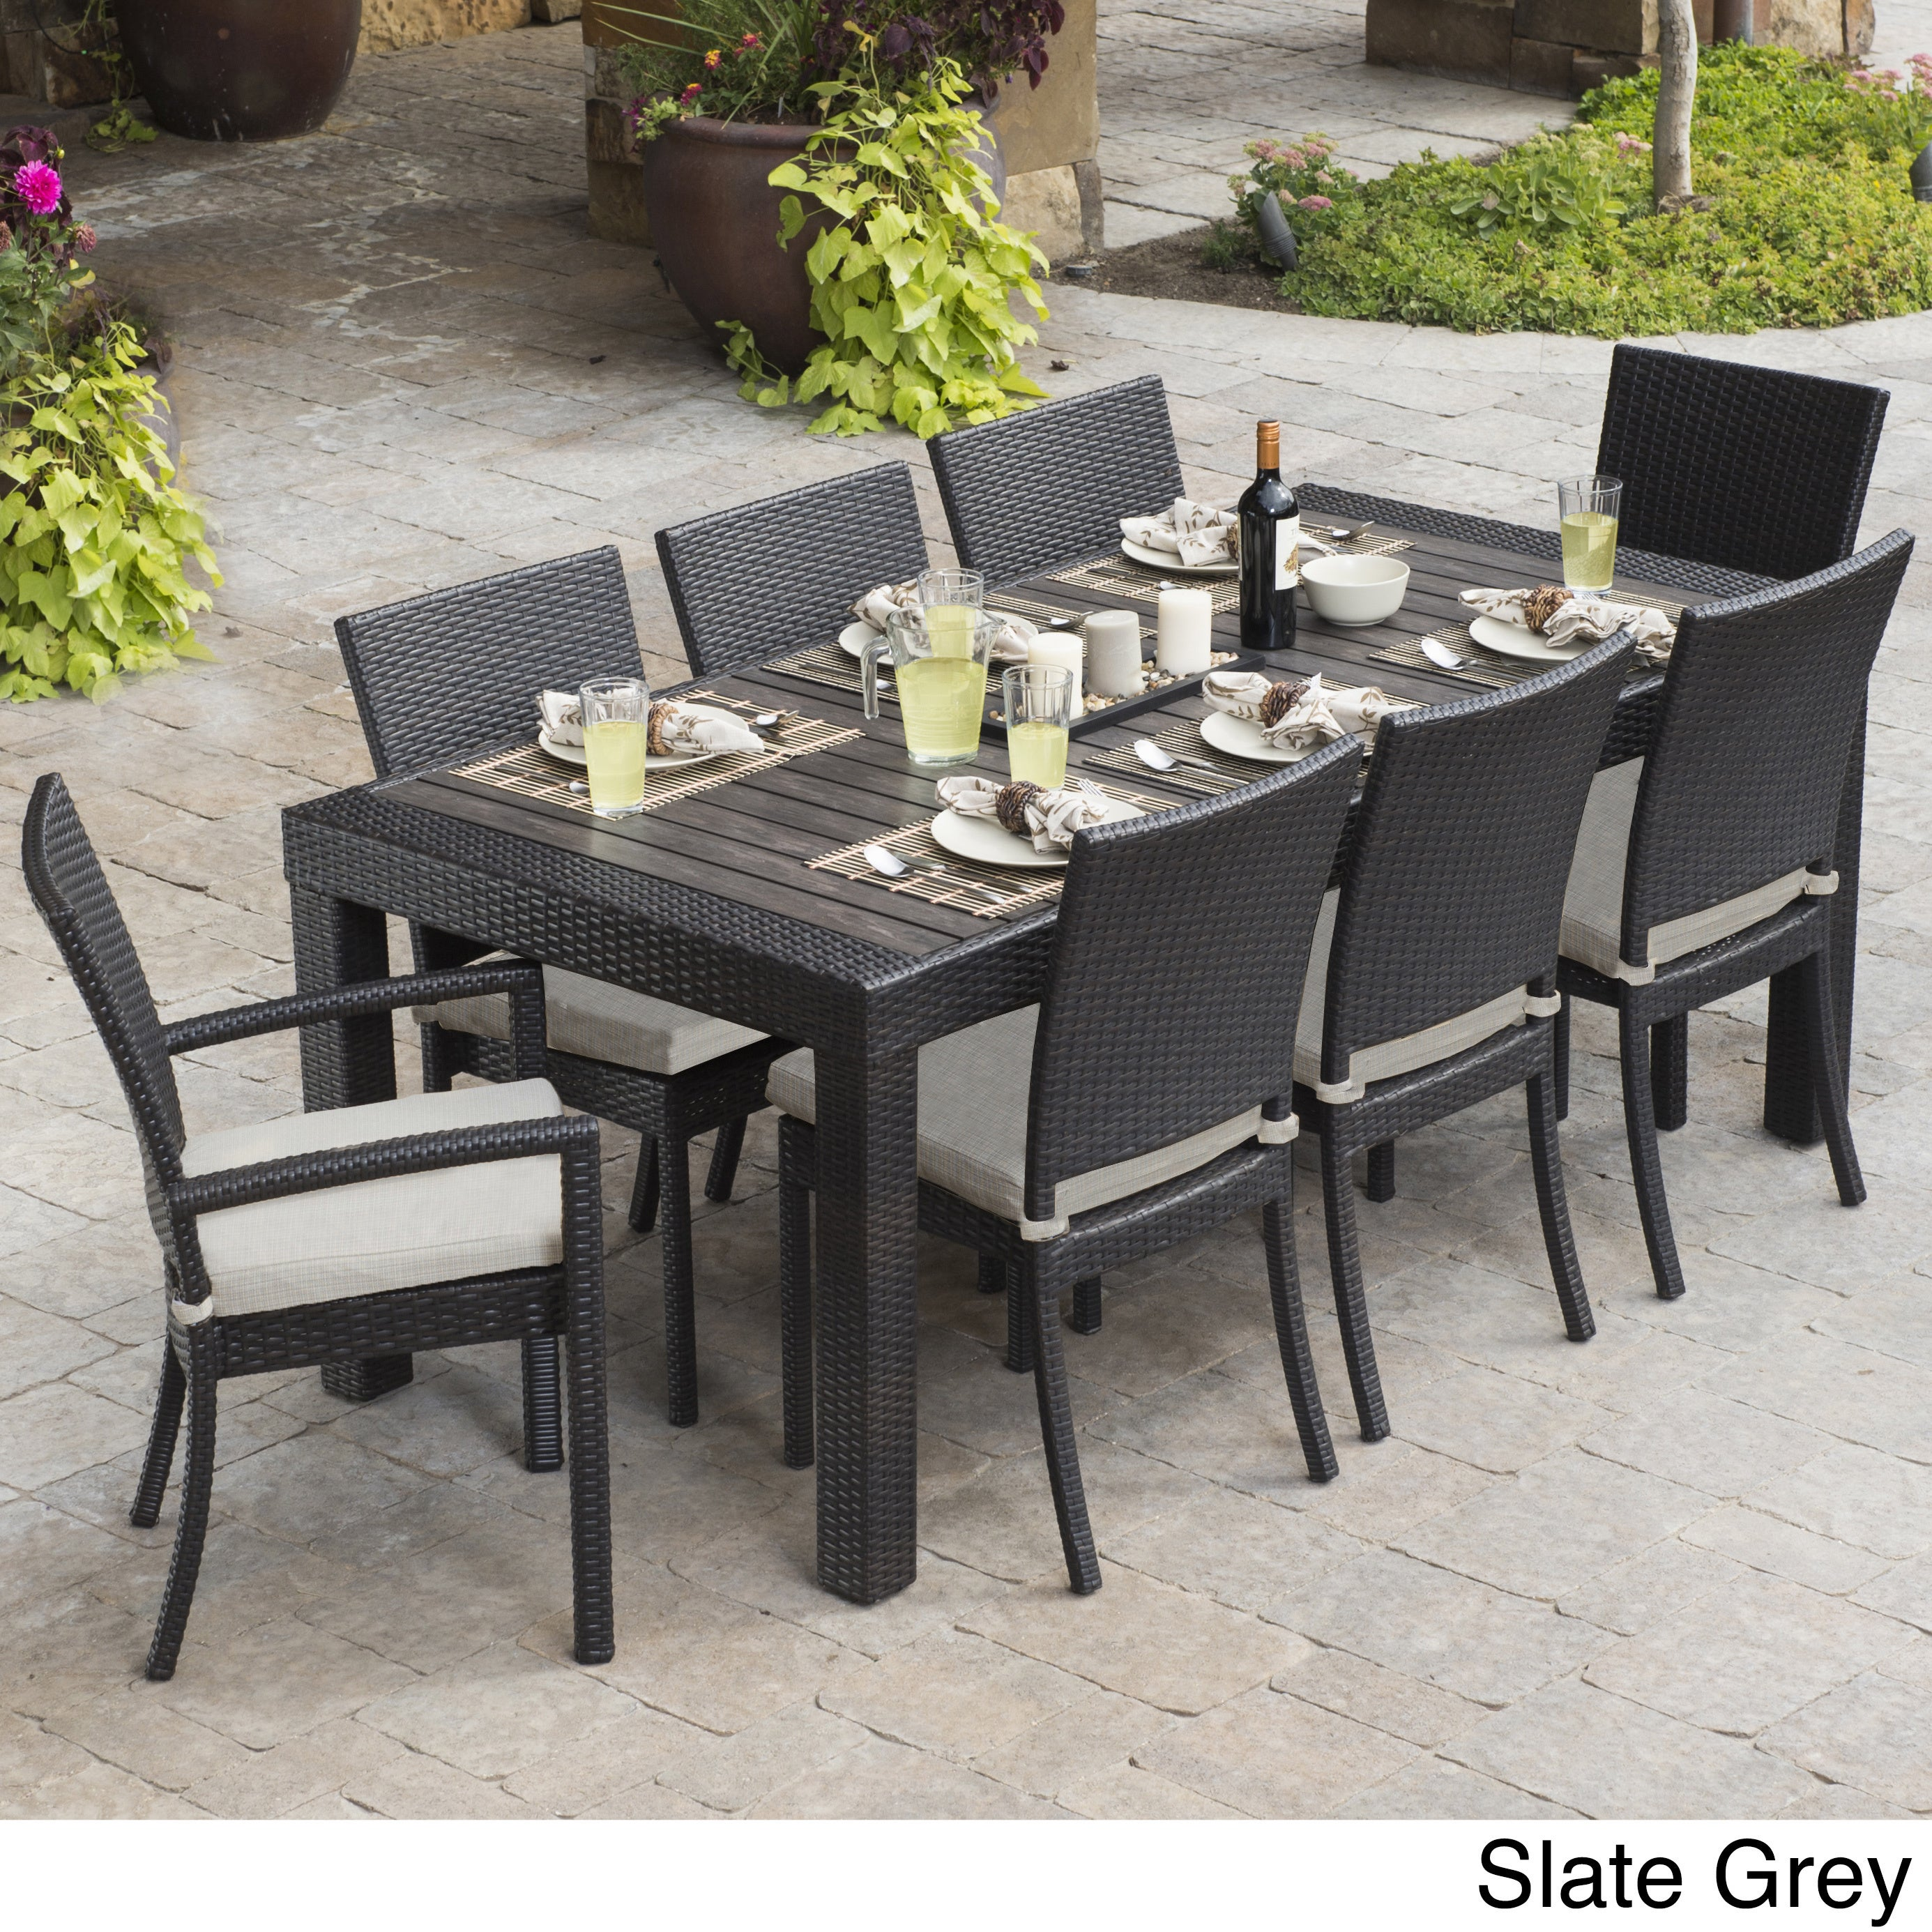 Rst Brands Deco 9 Piece Dining Set Patio Furniture Overstock Shopping Big Discounts On Rst